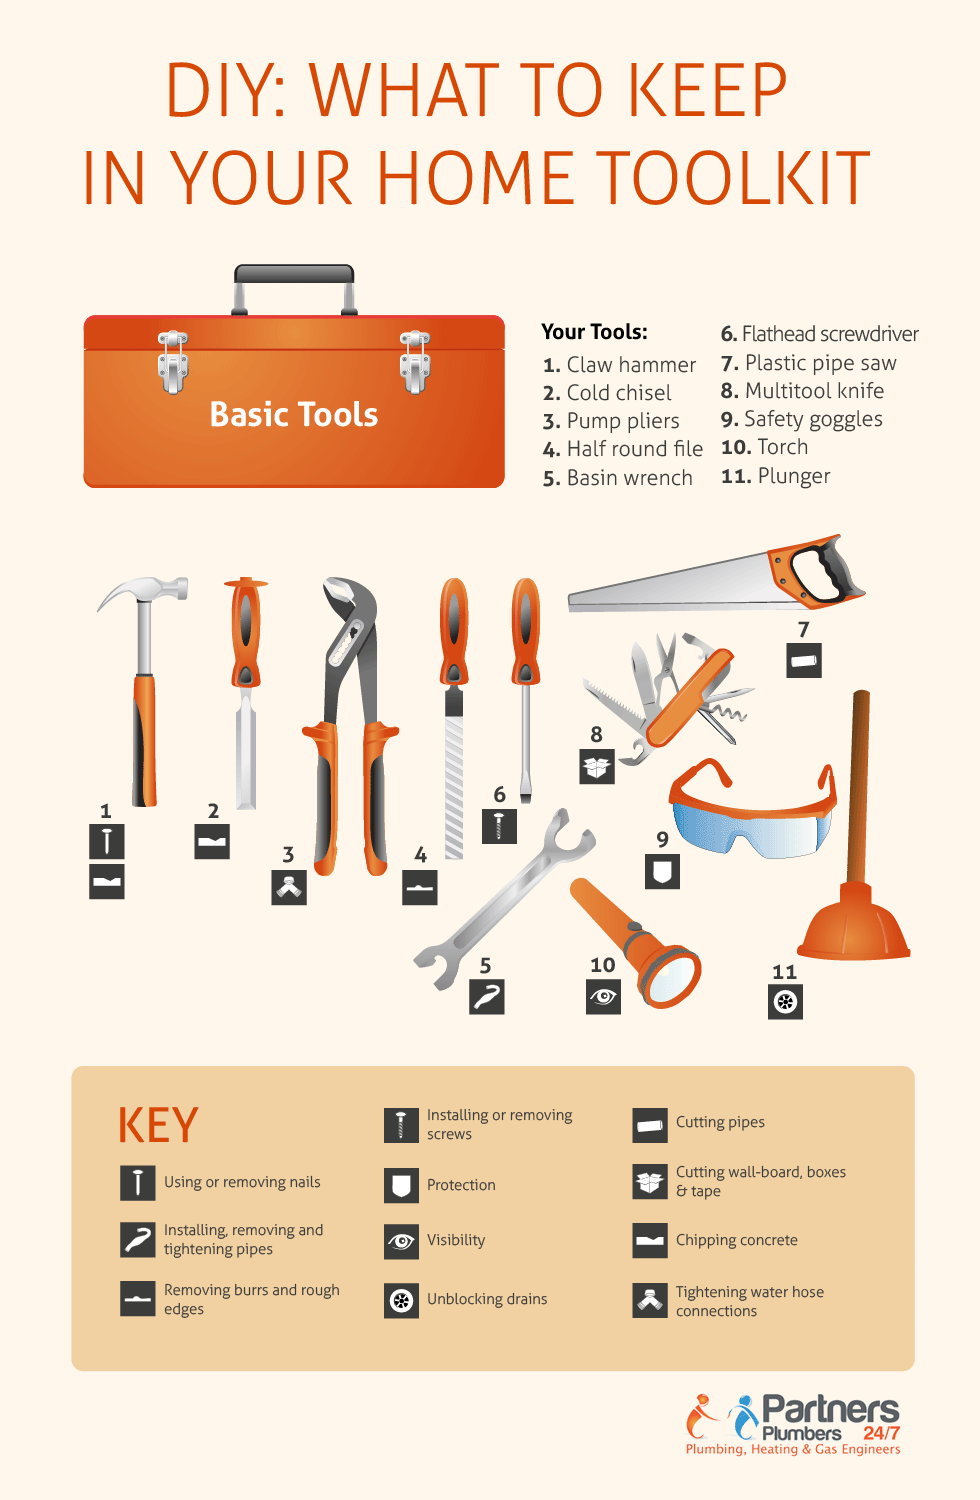 image - Basic Home Improvement Tools for Diy